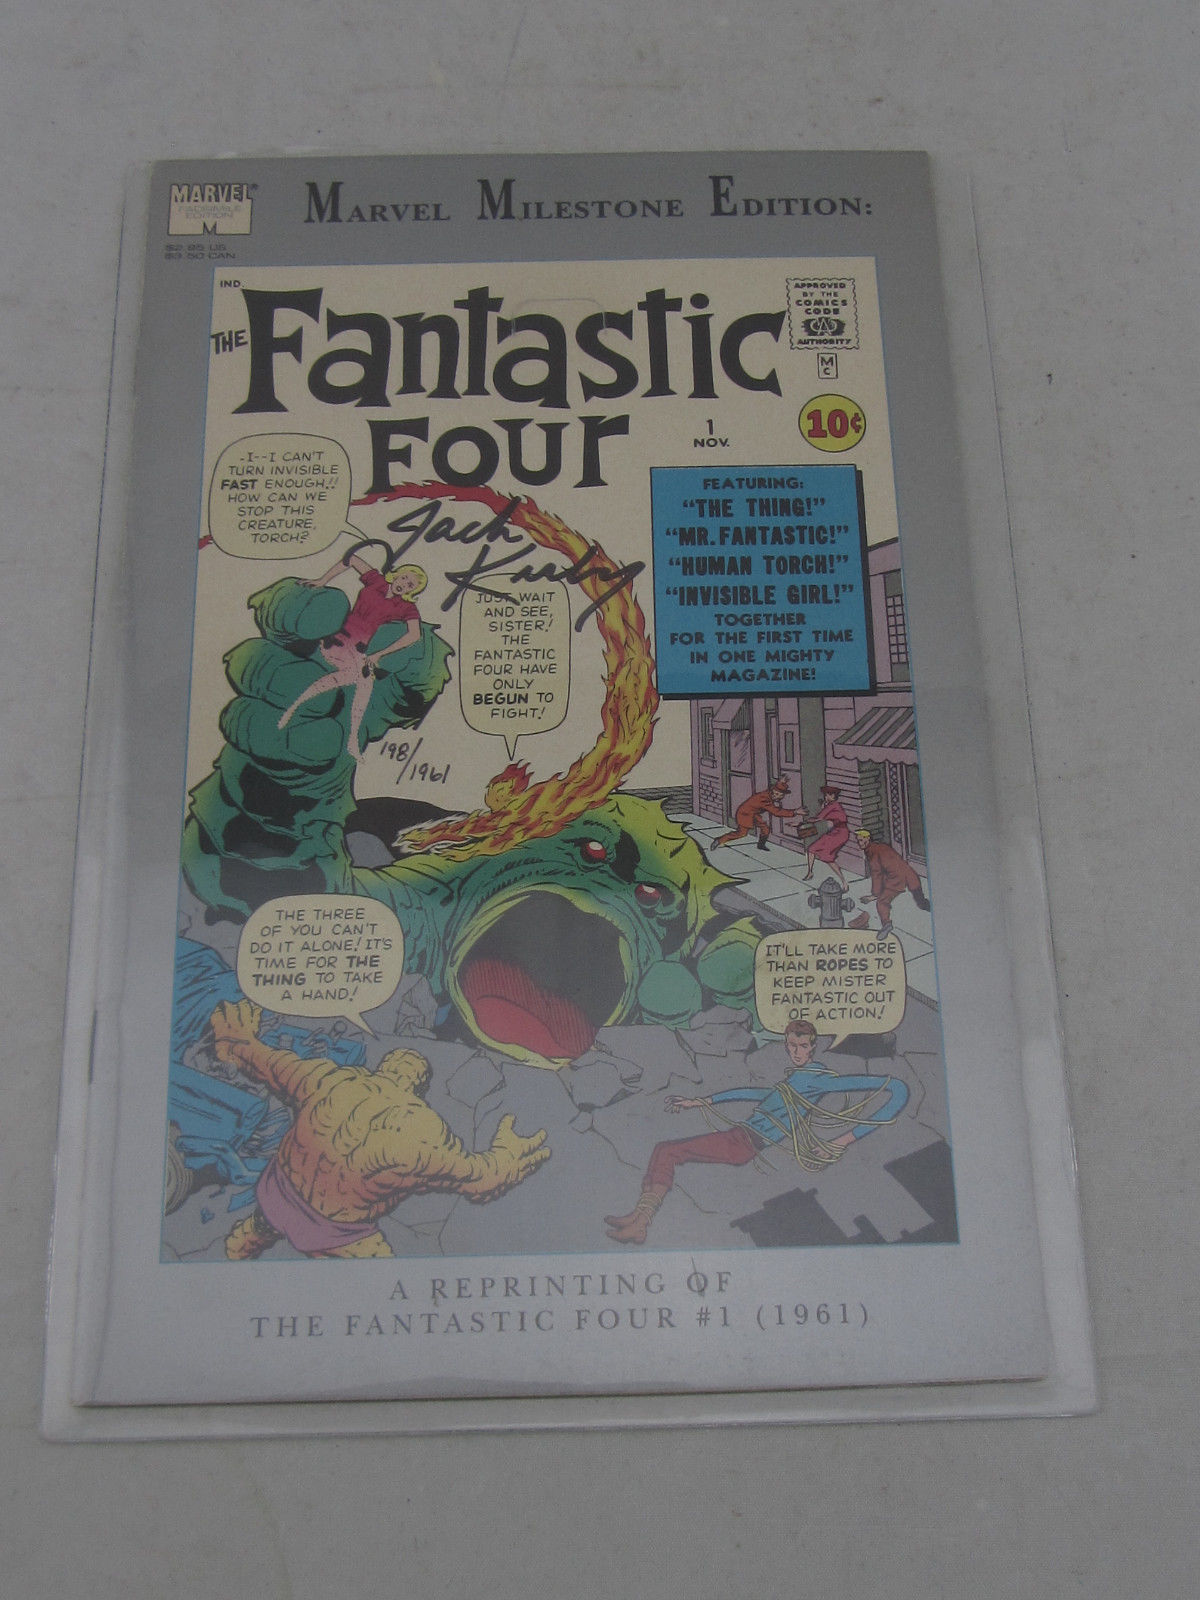 Fantastic Four #1 Milestone Ed Reprint Signed Jack Kirby w/ COA #198 of 1961